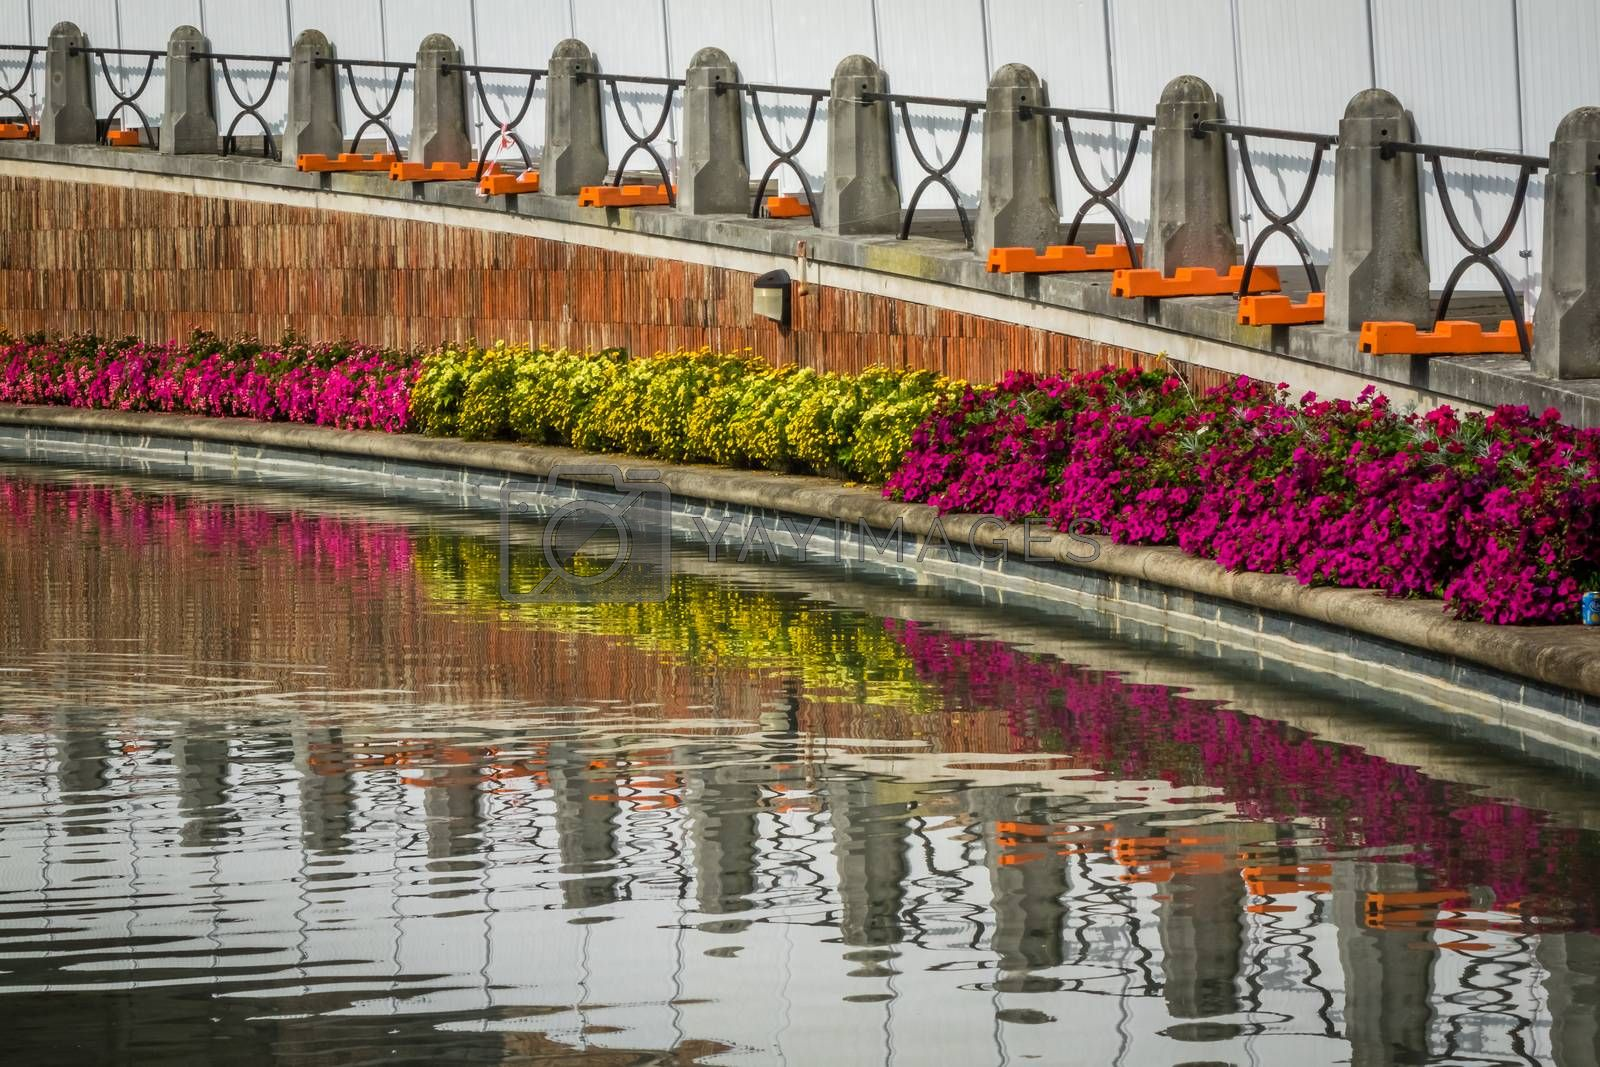 Colorful pink and yellow flowers reflected in water of a small channel